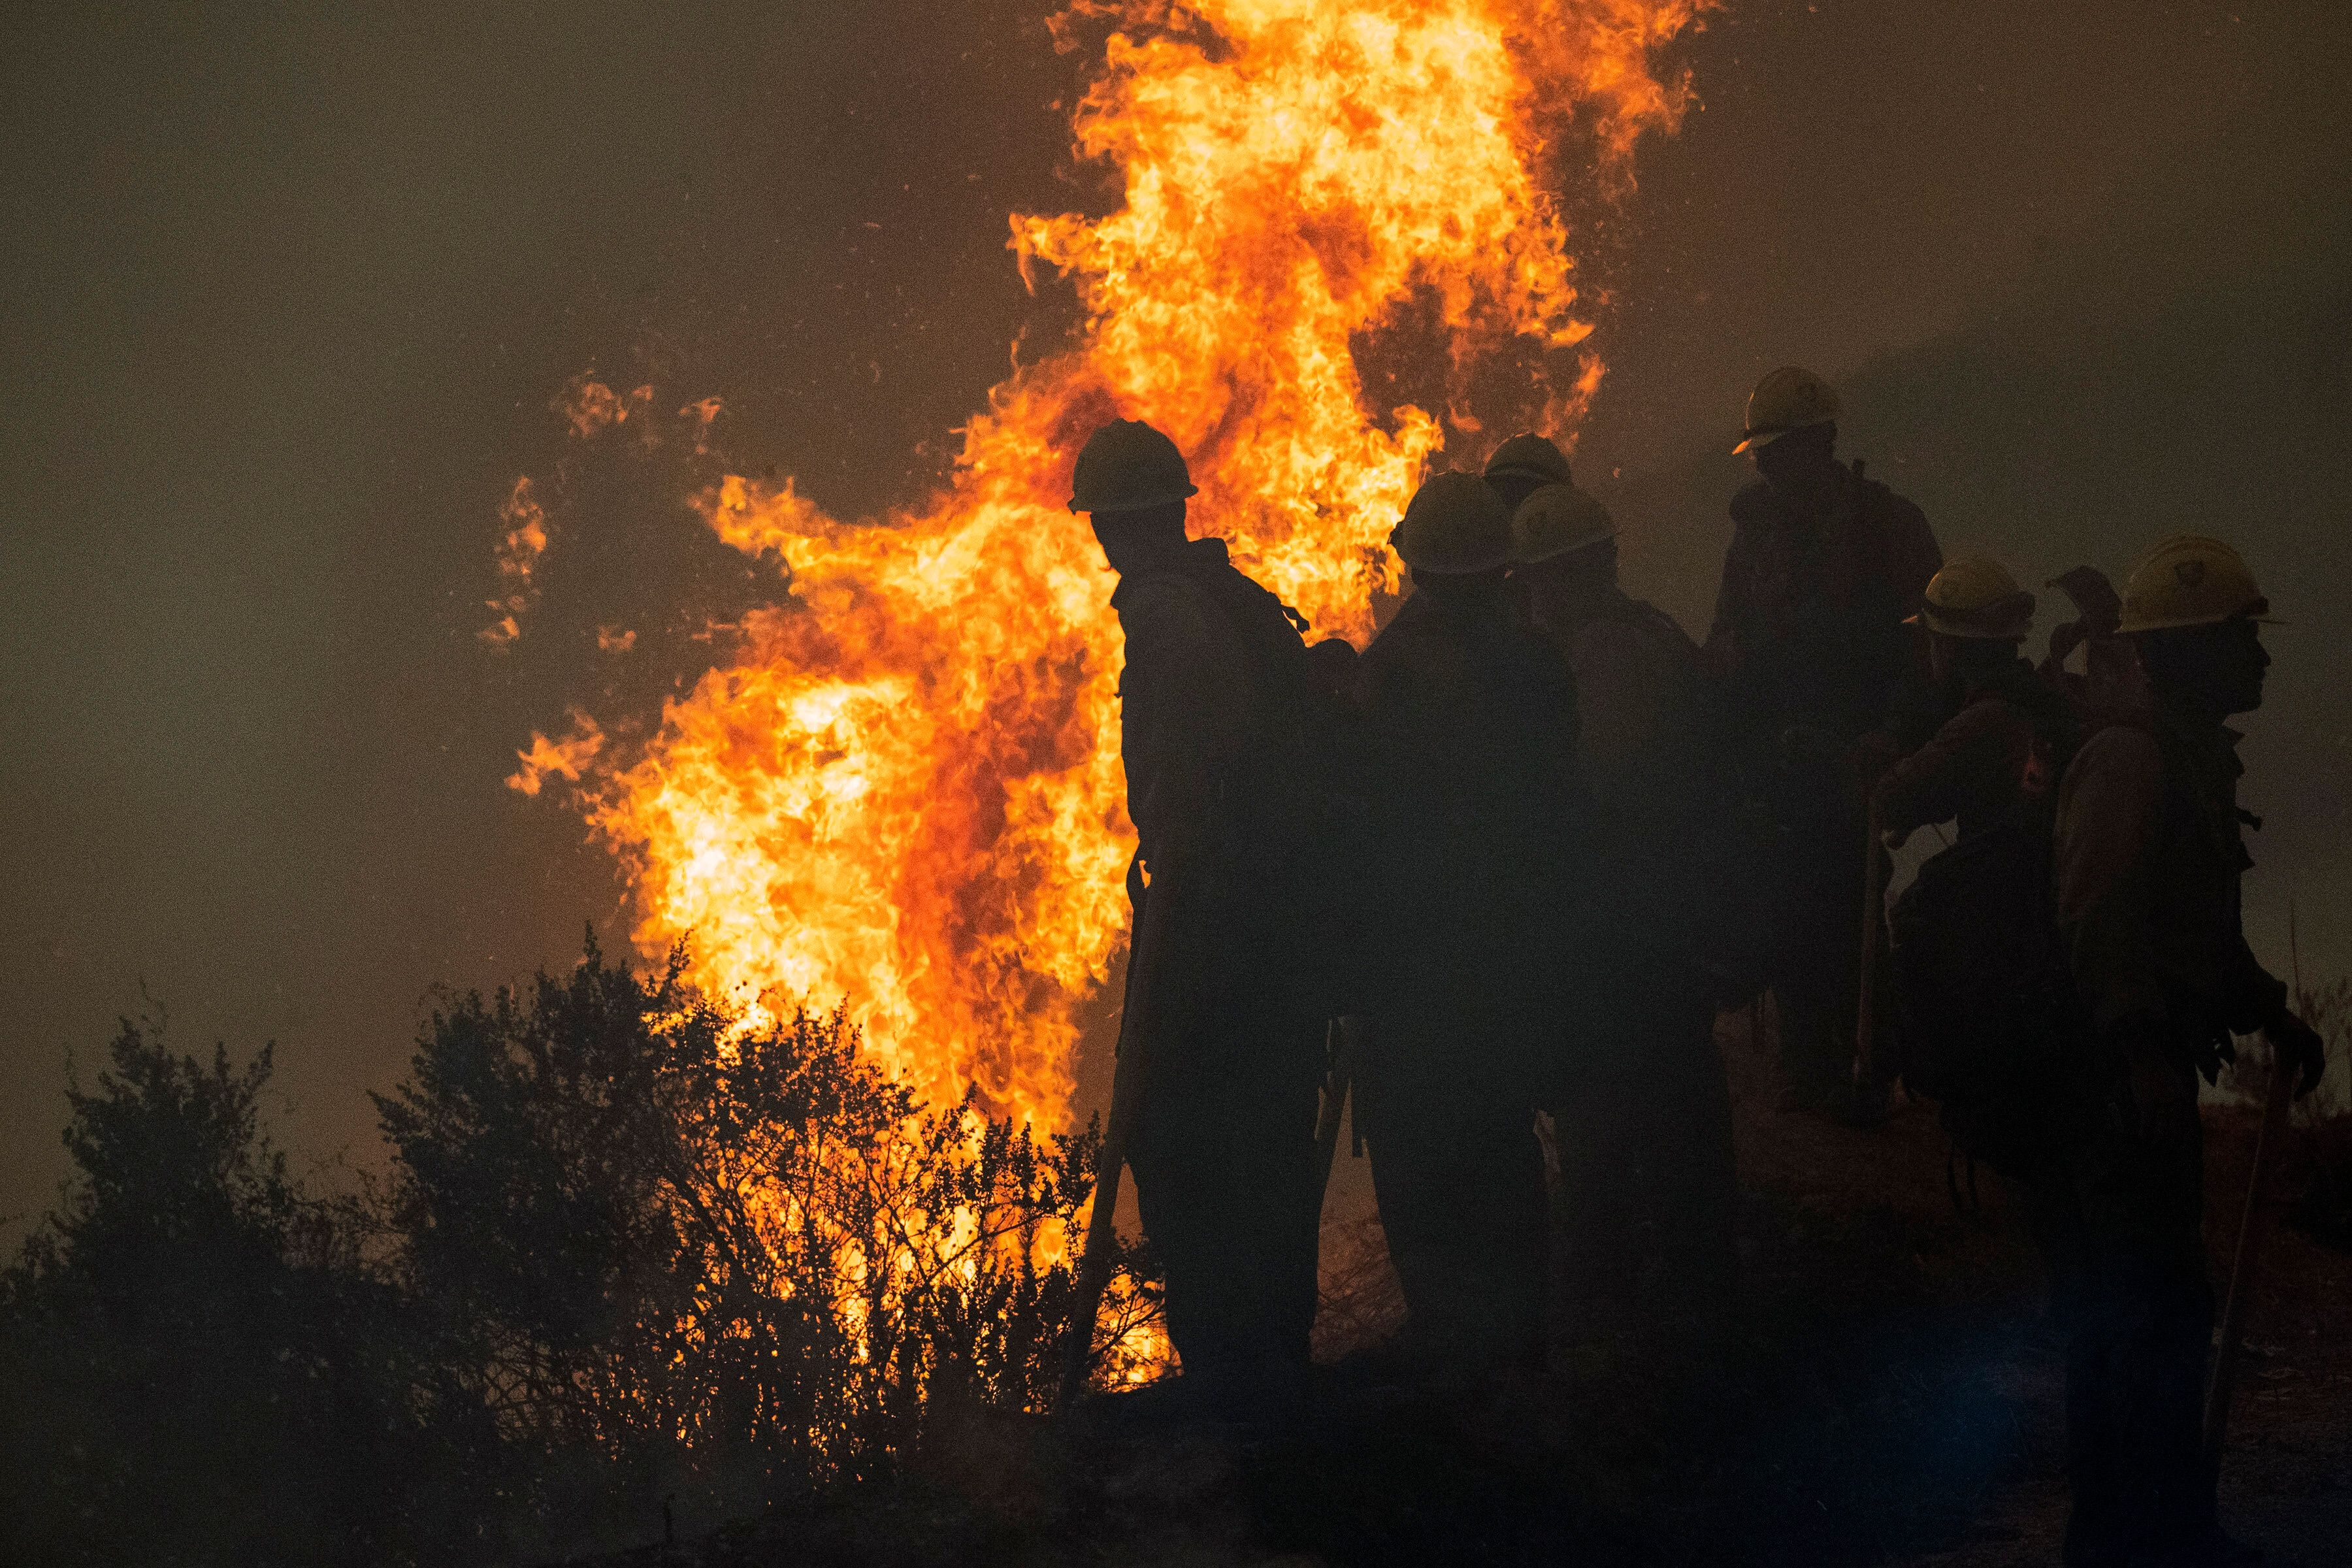 Firefighters monitor a controlled burn along Nacimiento-Fergusson Road to help contain the Dolan Fire near Big Sur, Californi